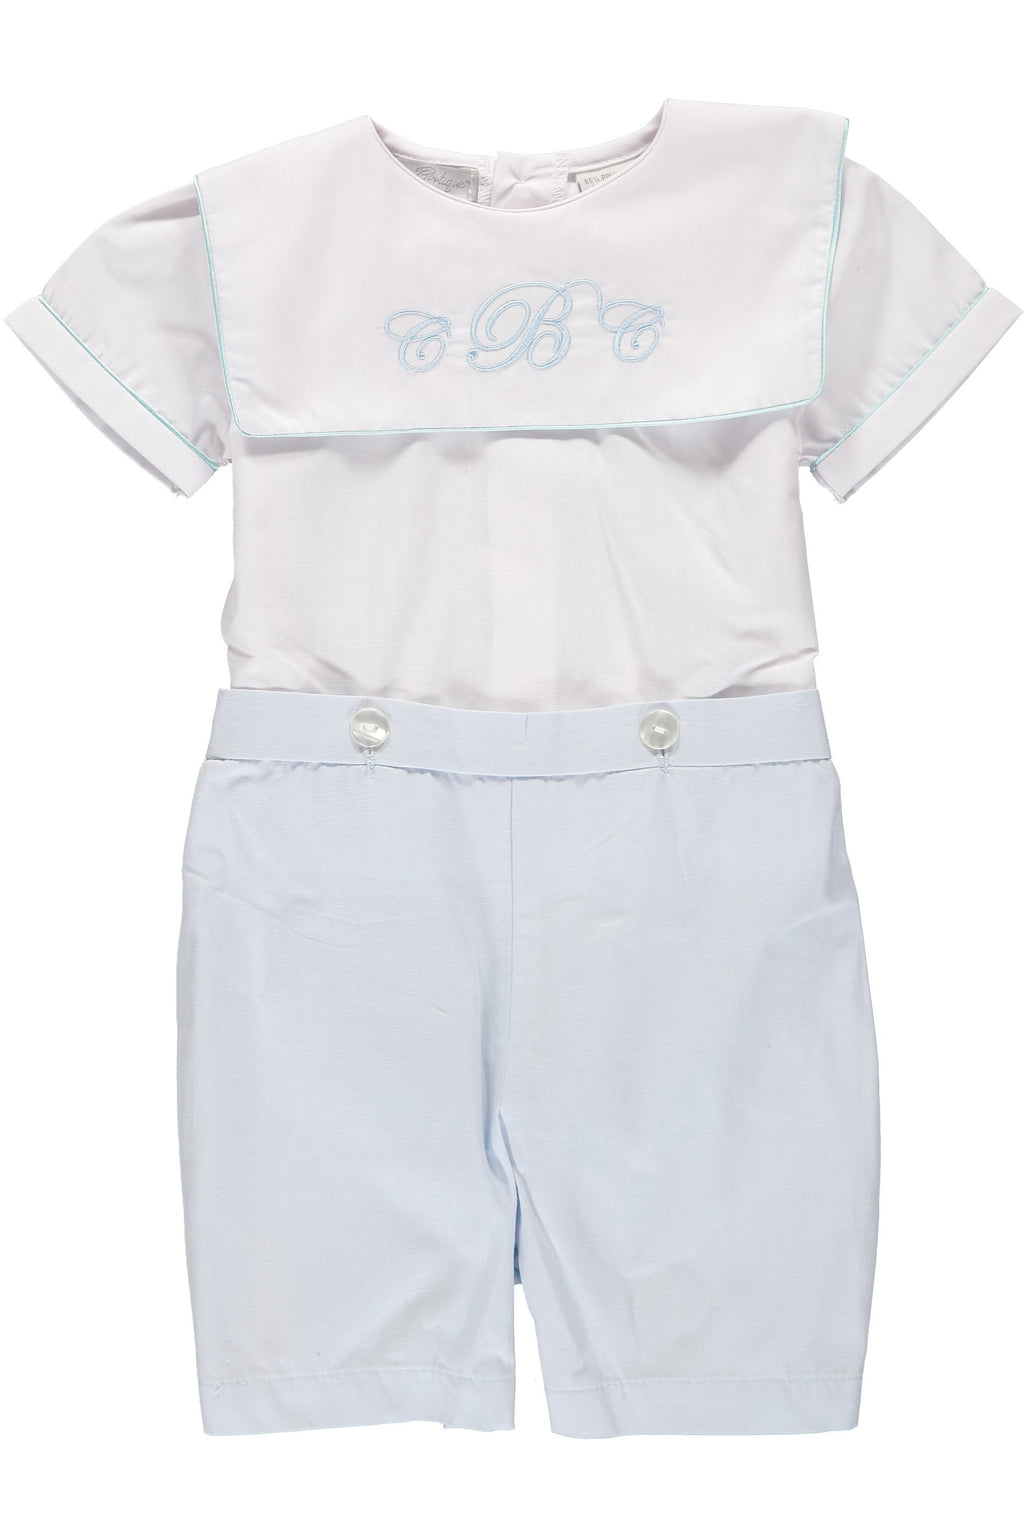 Carriage Boutique Baby Boy Classic Monogram Blank Bobbie Suit - White Blue [product_tags] - Carriage Boutique